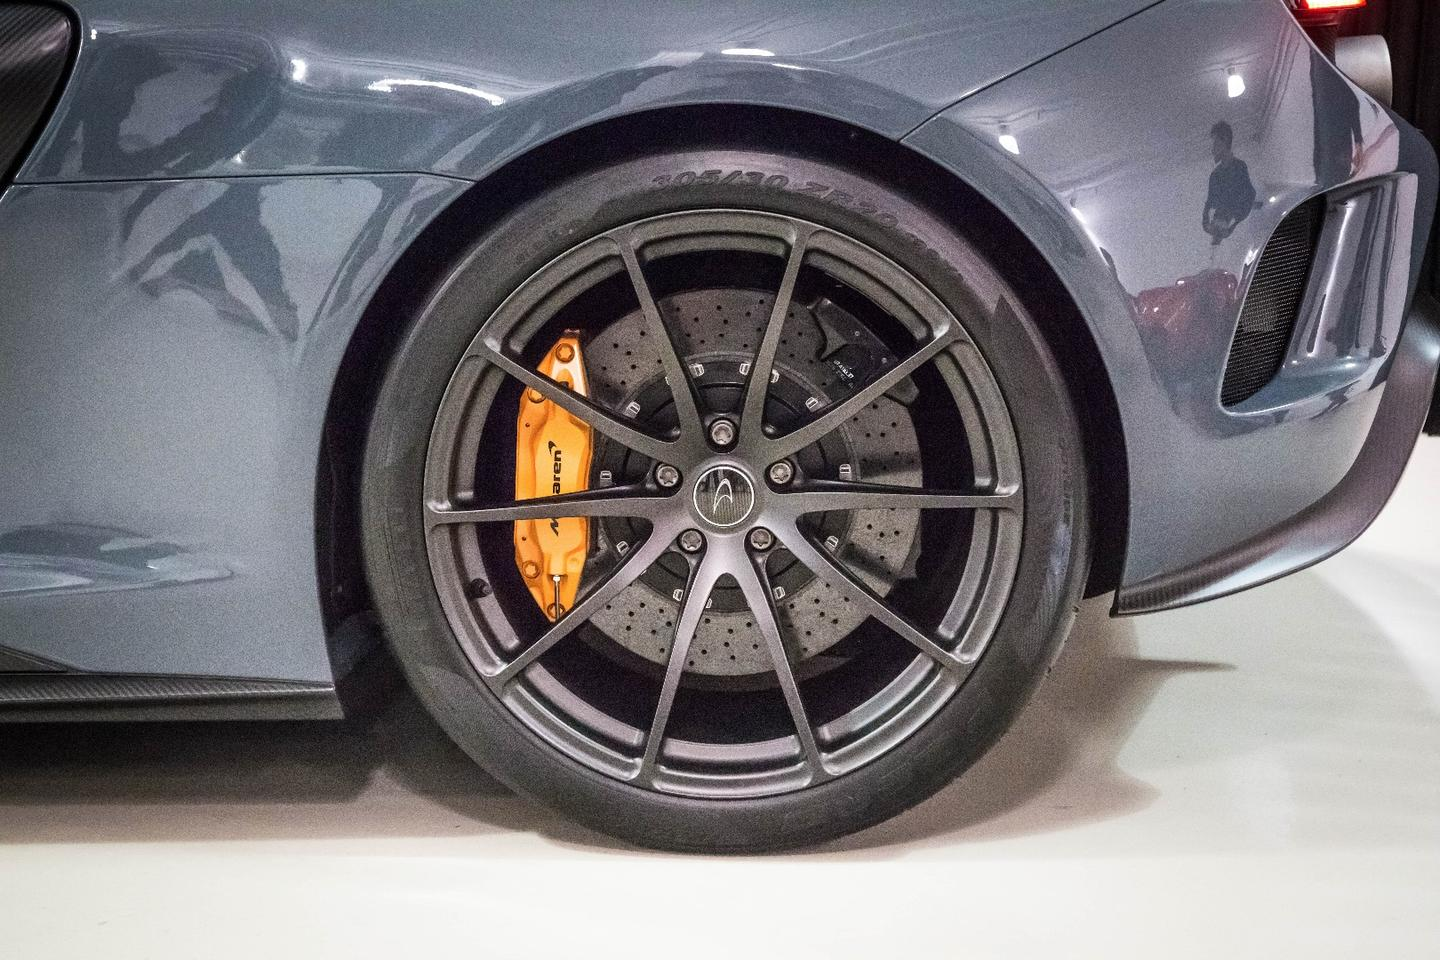 There are a number of wheel options on the 675LT - the ones on this car are the lightest option